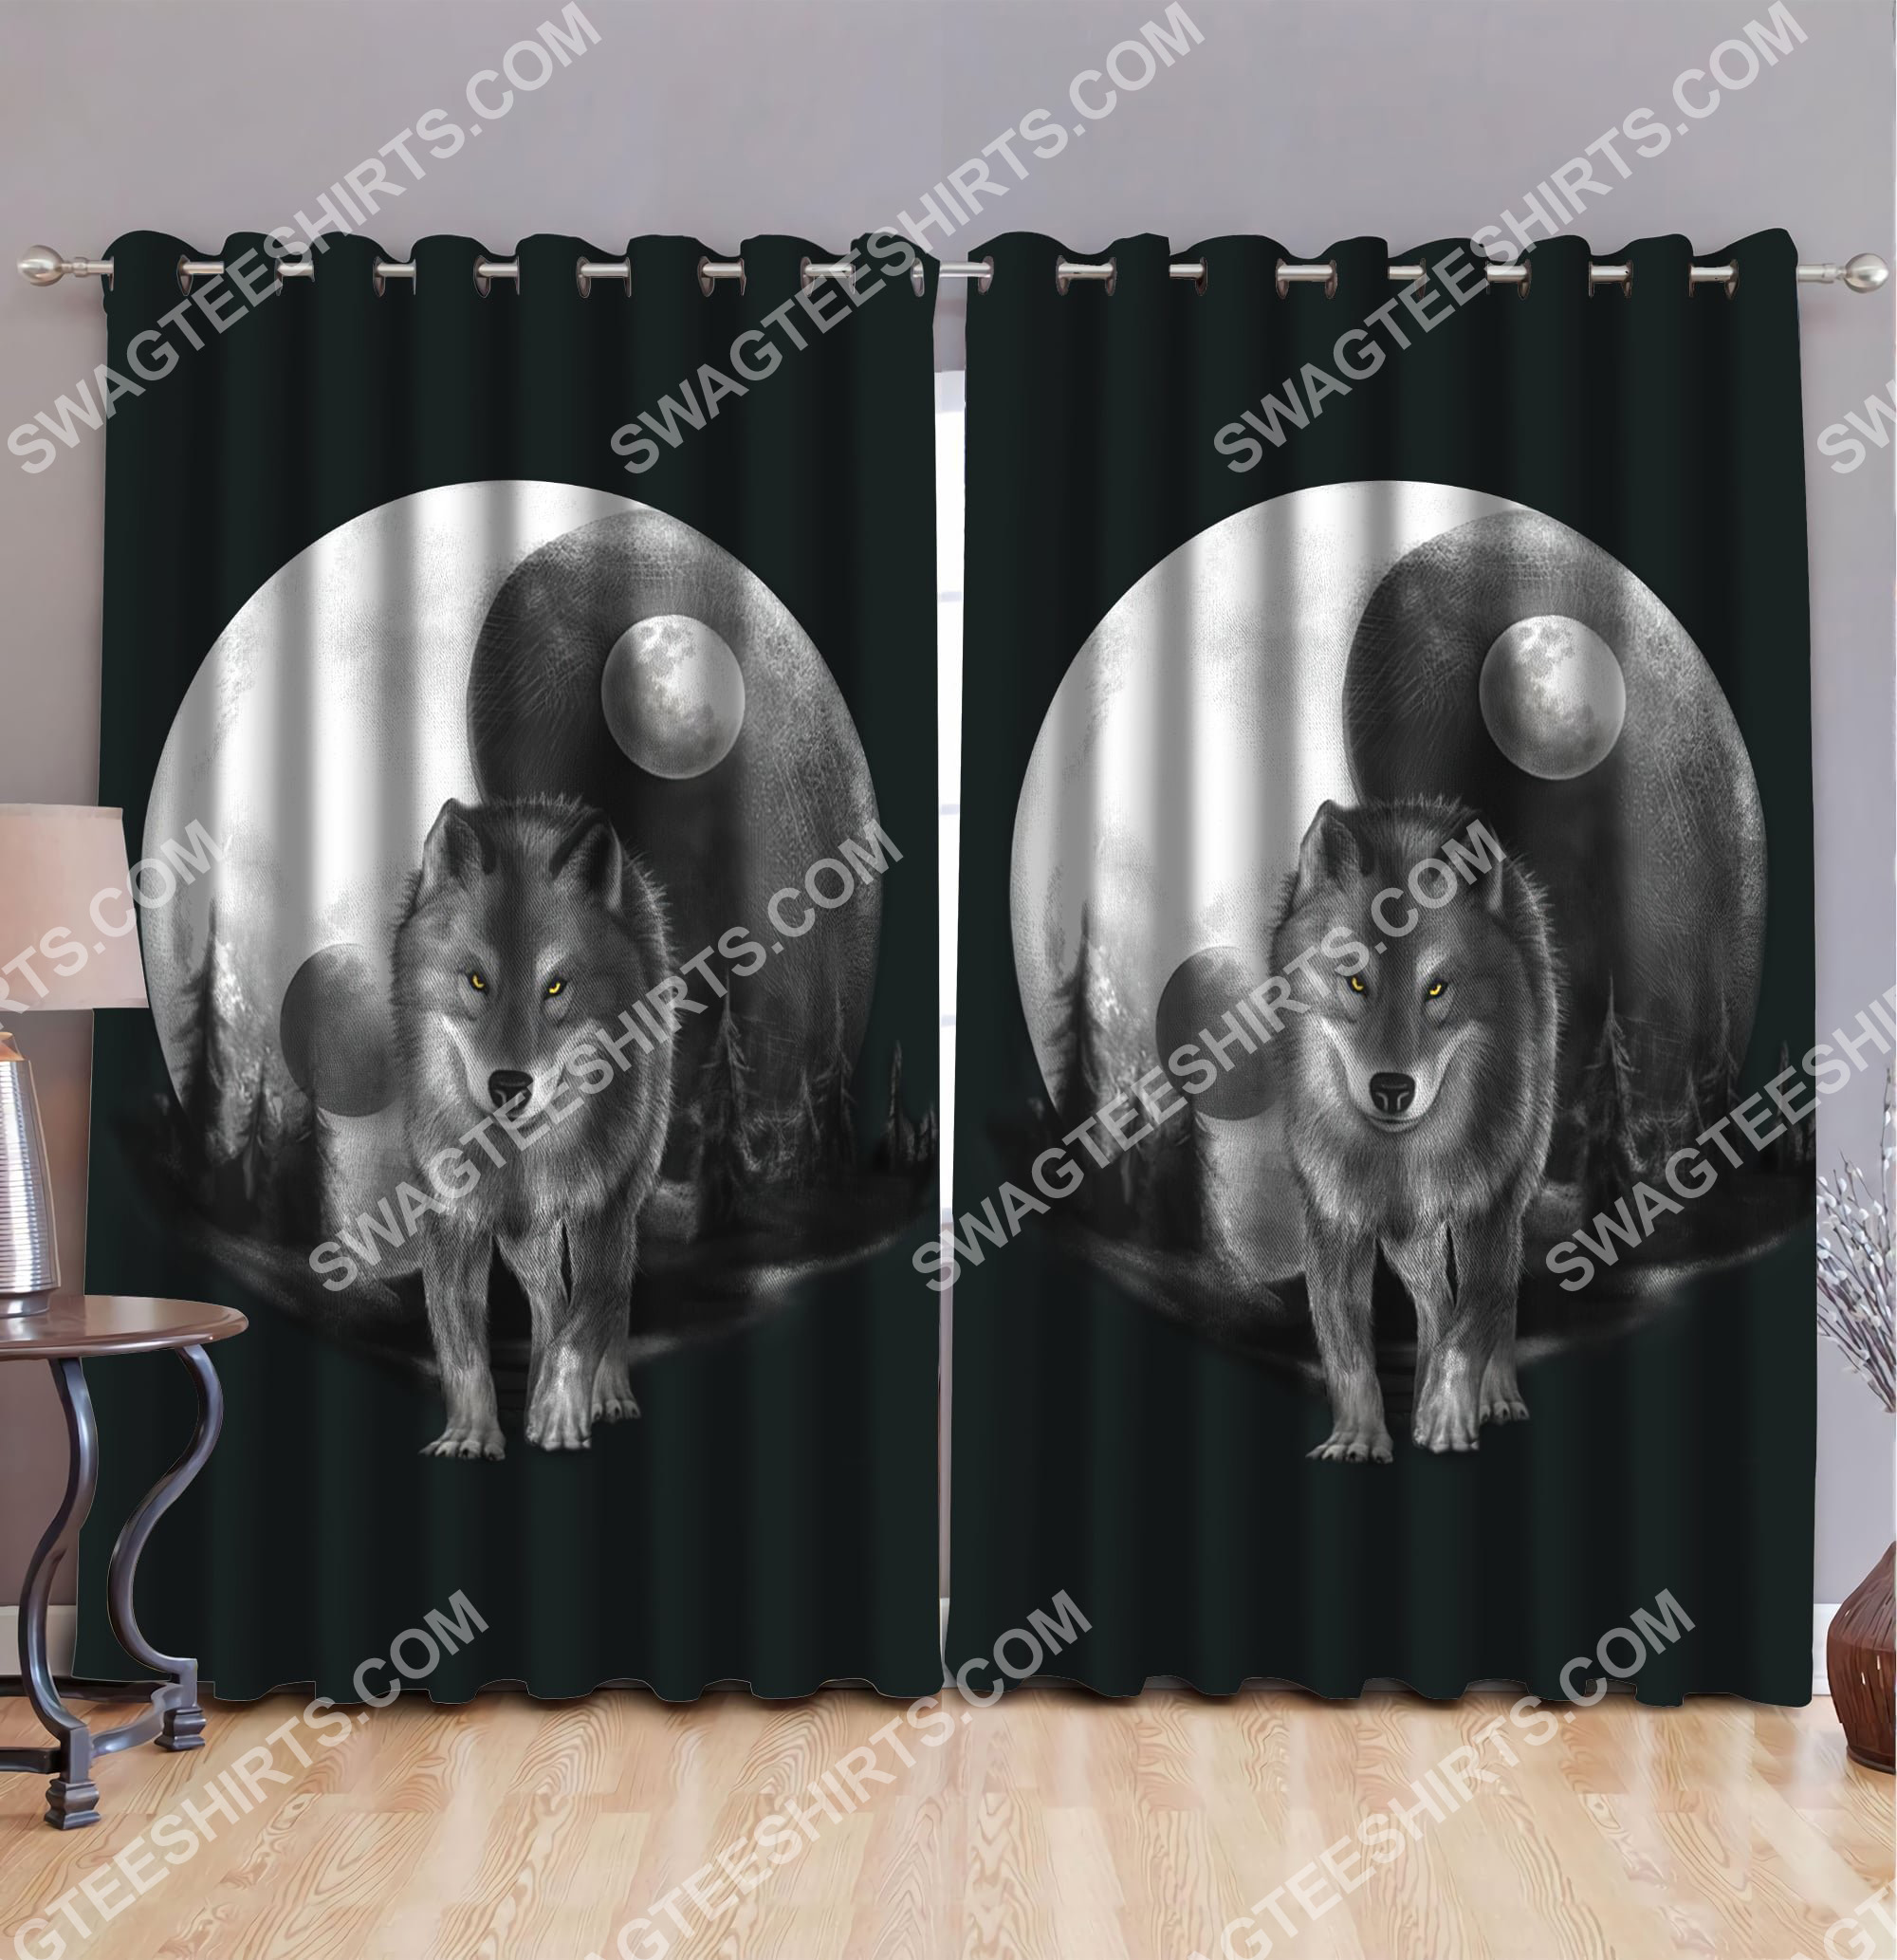 [Top-selling] wolf walk in moon all over printed window curtains - maria